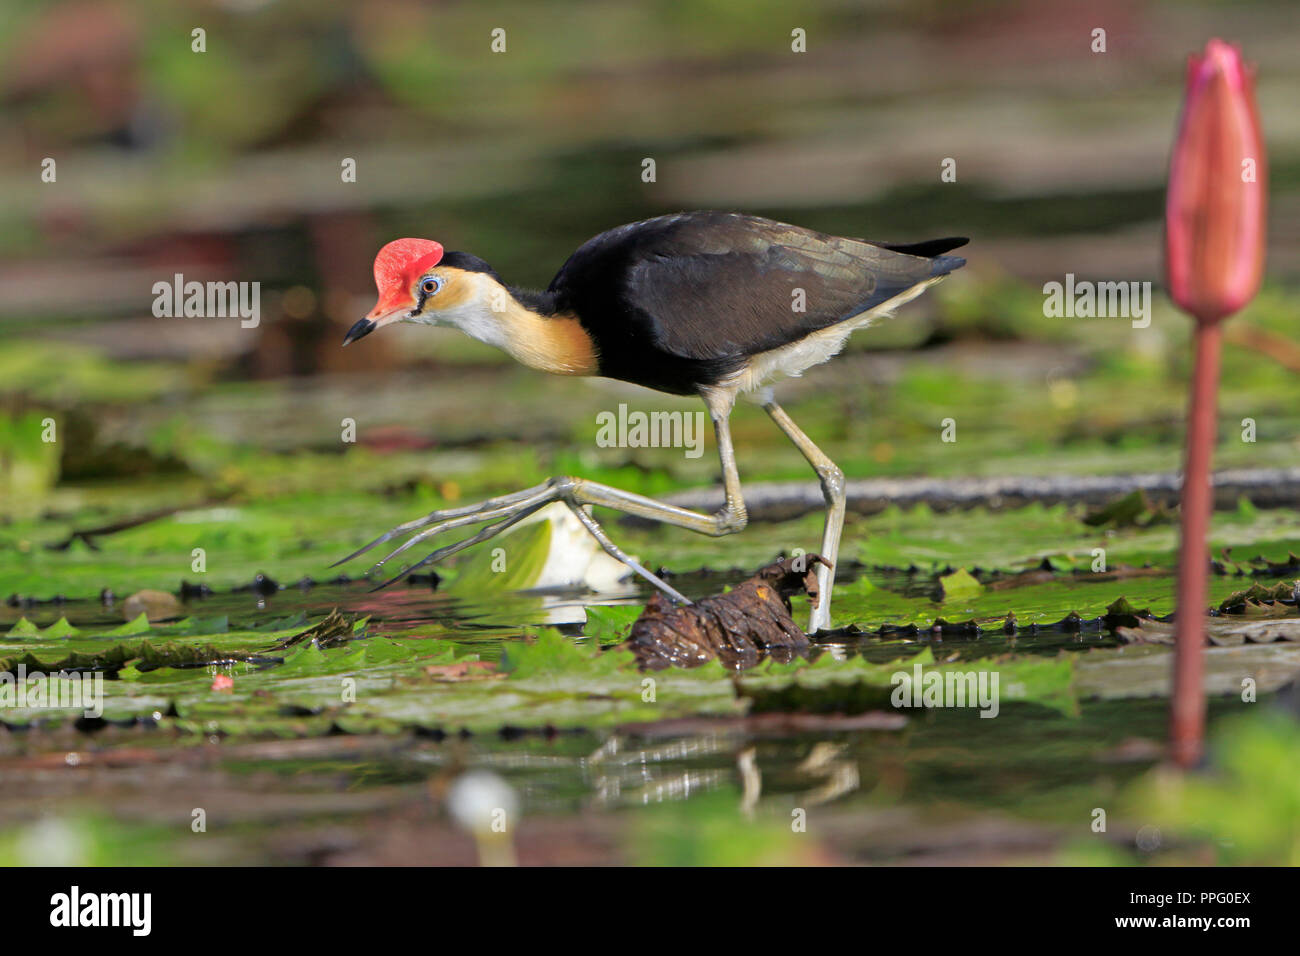 Comb-crested Jacana on water lilies in Port Moresby Papua New Guinea - Stock Image